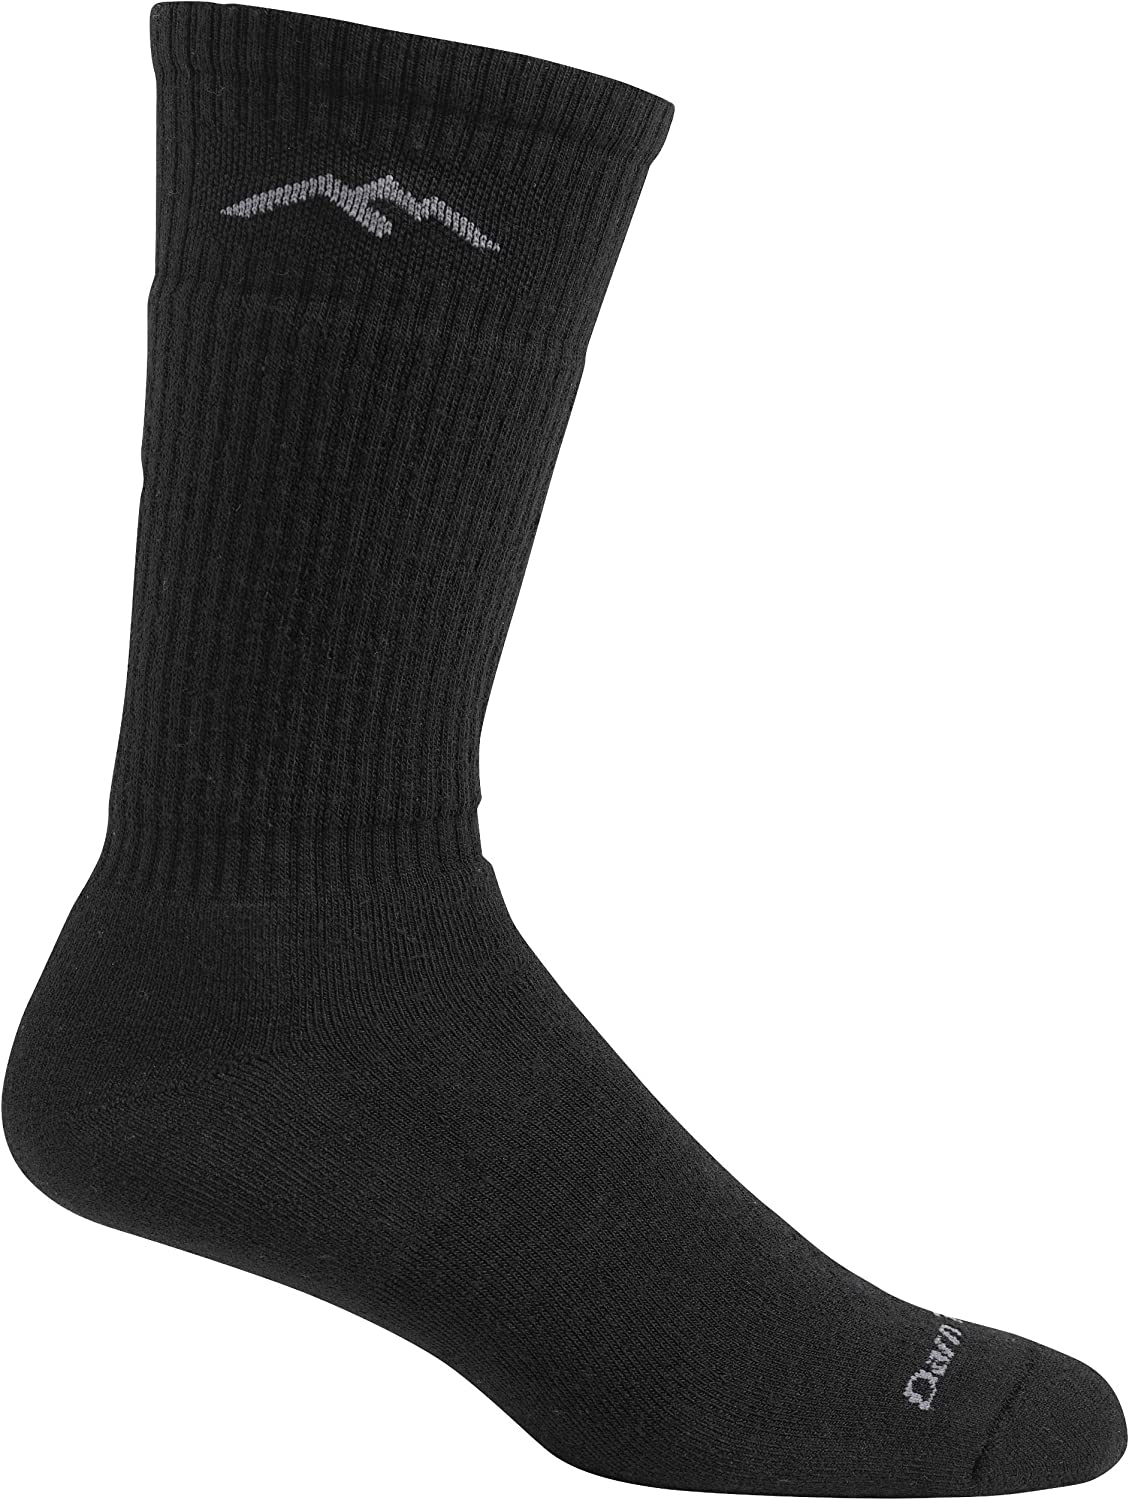 Darn Tough Vermont Merino Wool Dress Crew Light Sock